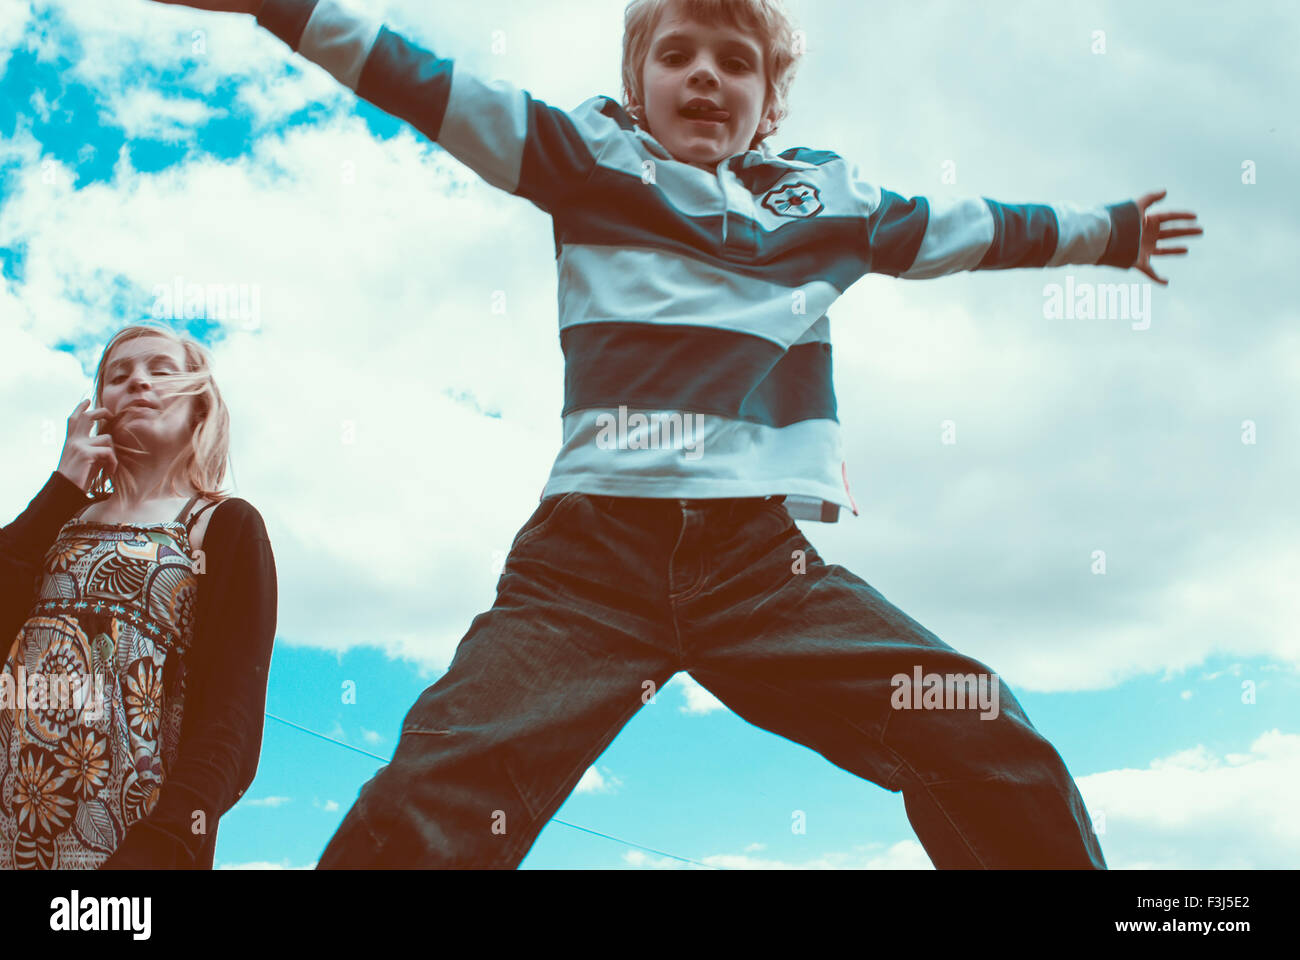 Little kid doing a star jump mid air - Stock Image